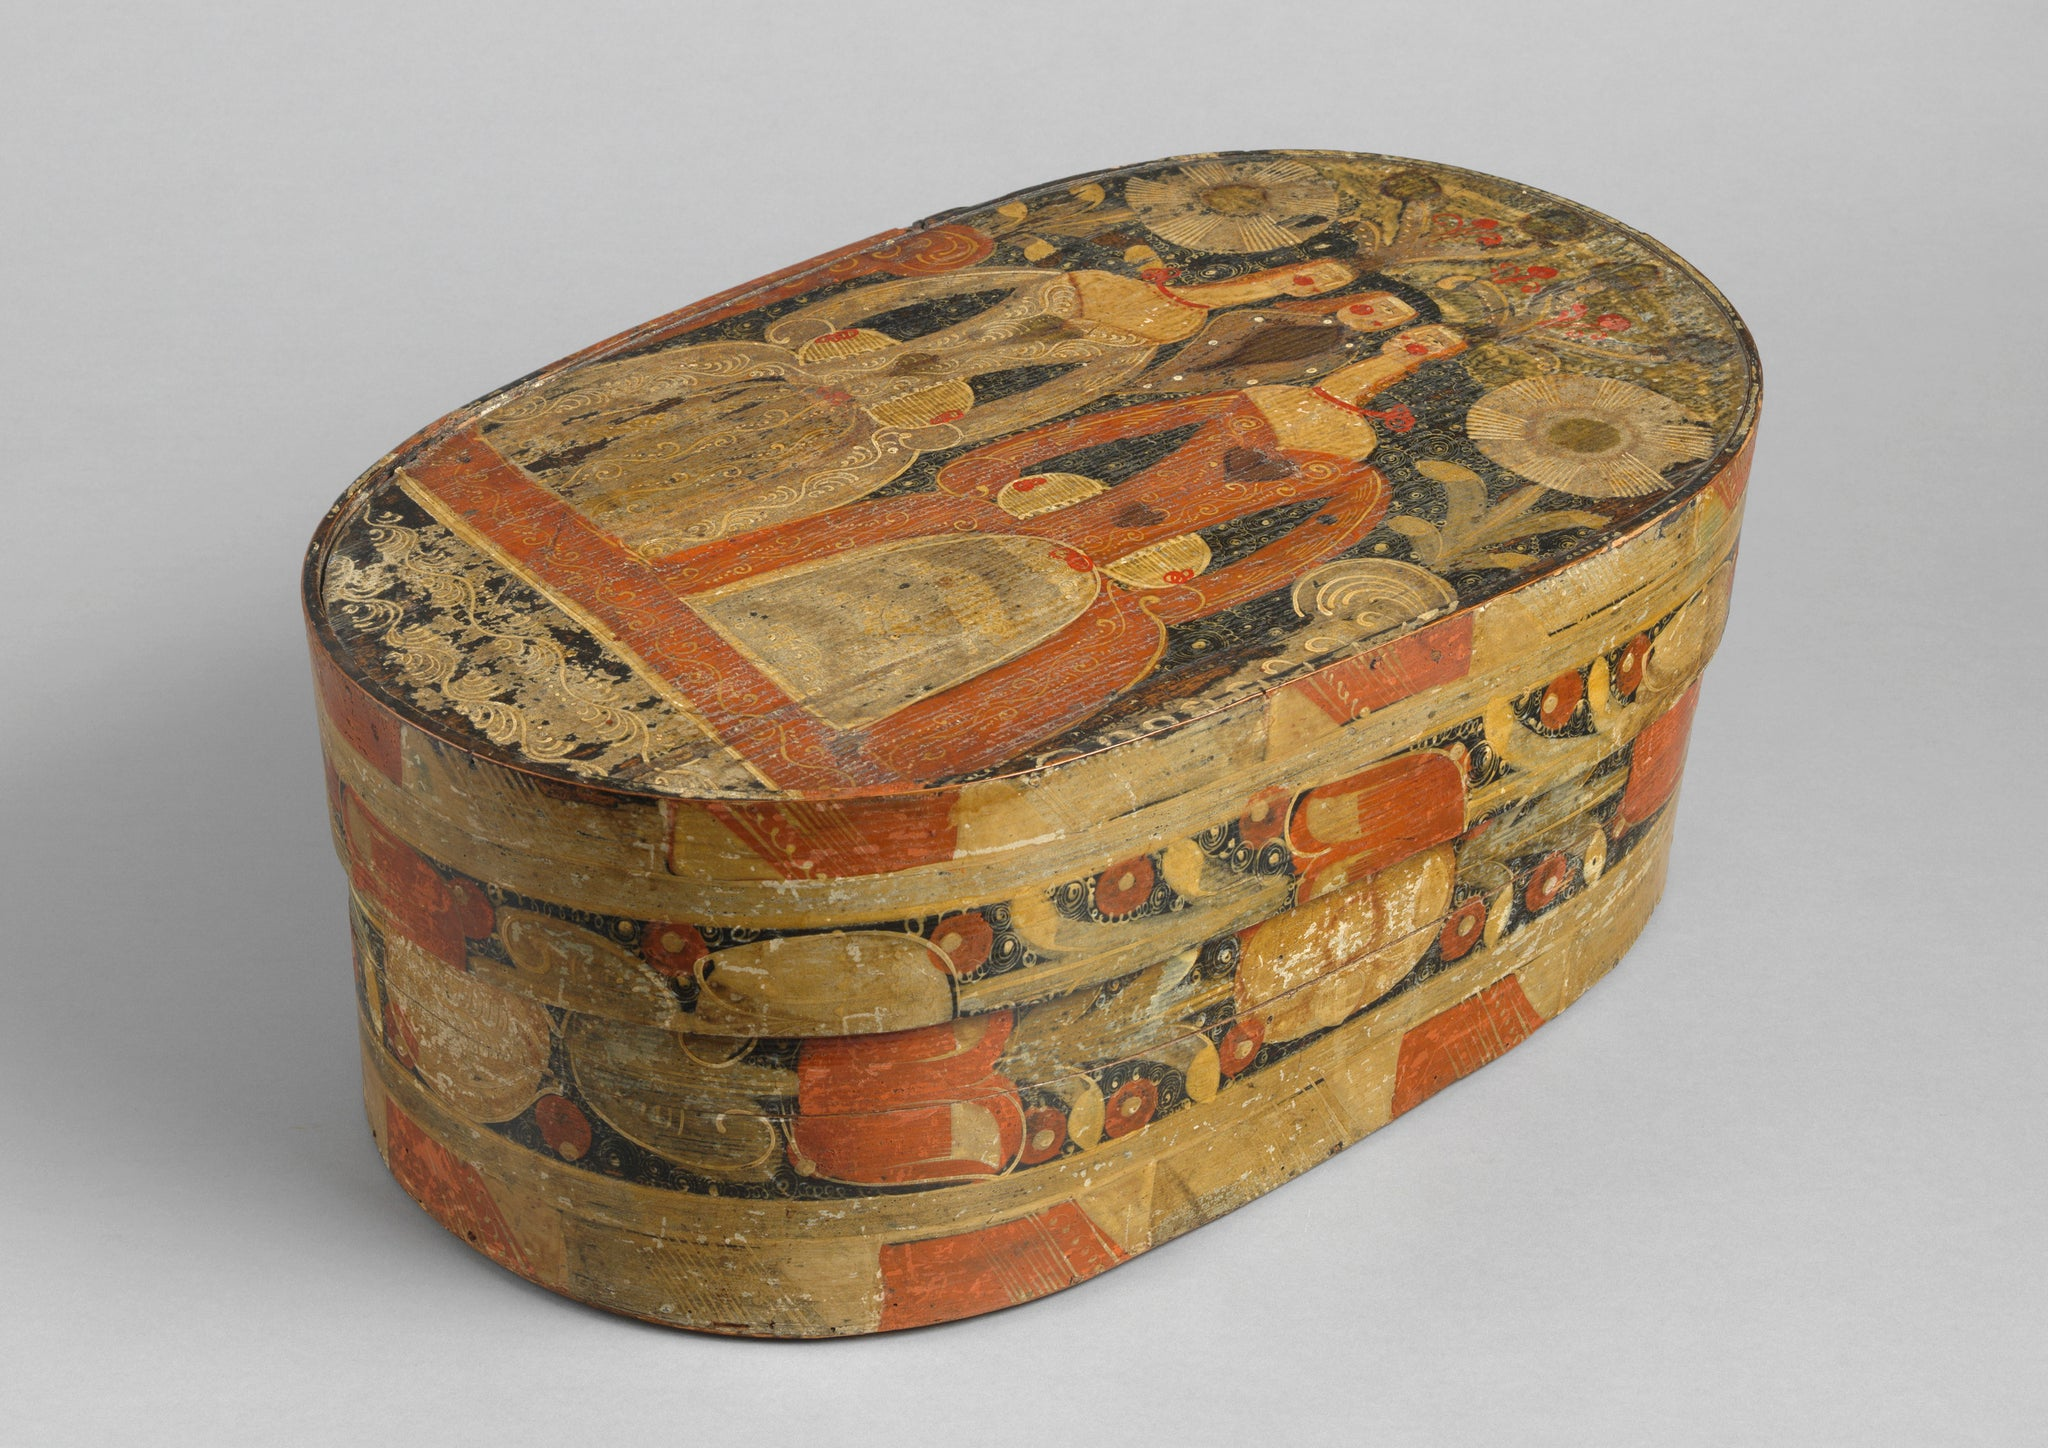 Fine Oval Bride's Box or 'Spaanaeske'